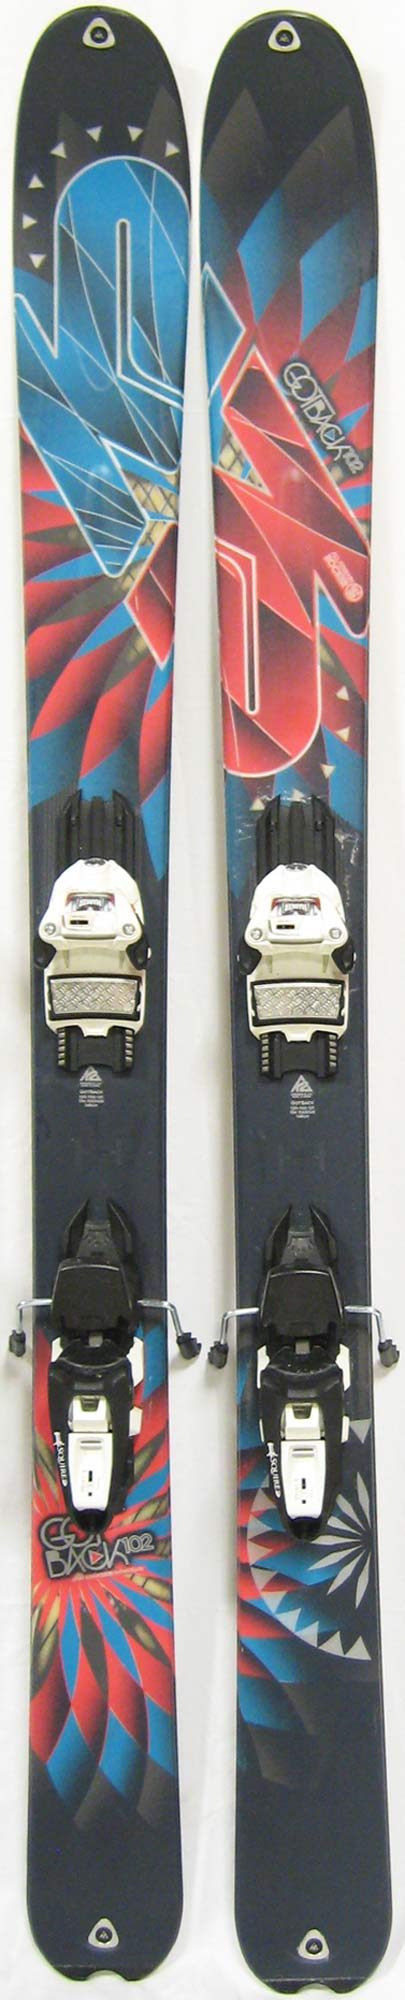 Topsheets of 2012 K2 GotBack Skis For Sale